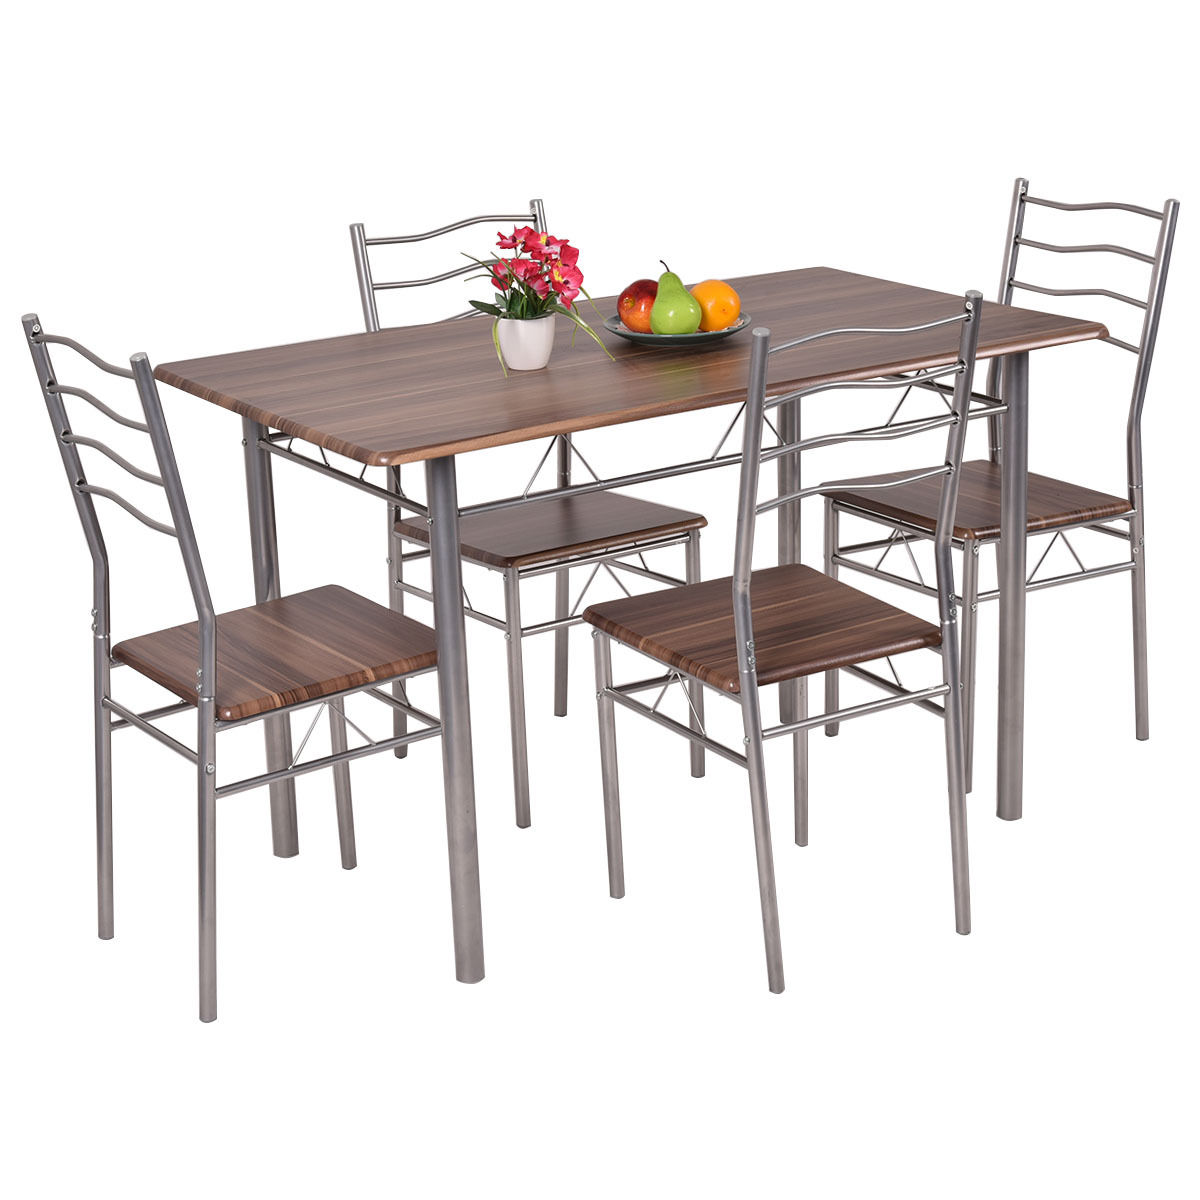 Mainstays 5 Piece Glass Top Metal Dining Set   Walmart com. Metal Dining Room Table Sets. Home Design Ideas